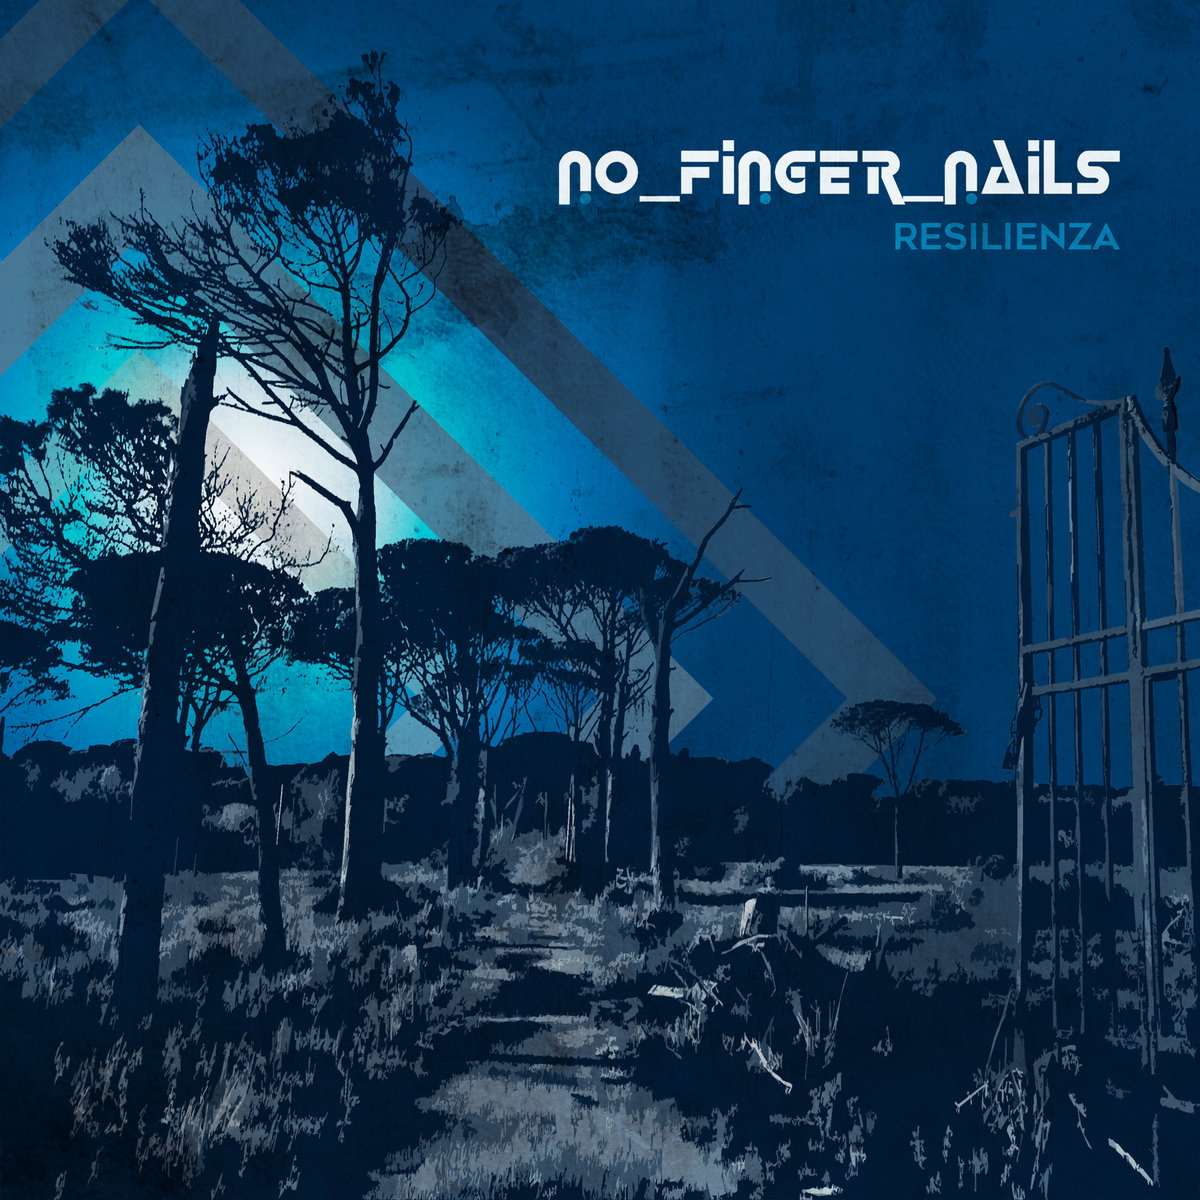 No Finger Nails - Resilienza EP | Bass Pirates Label